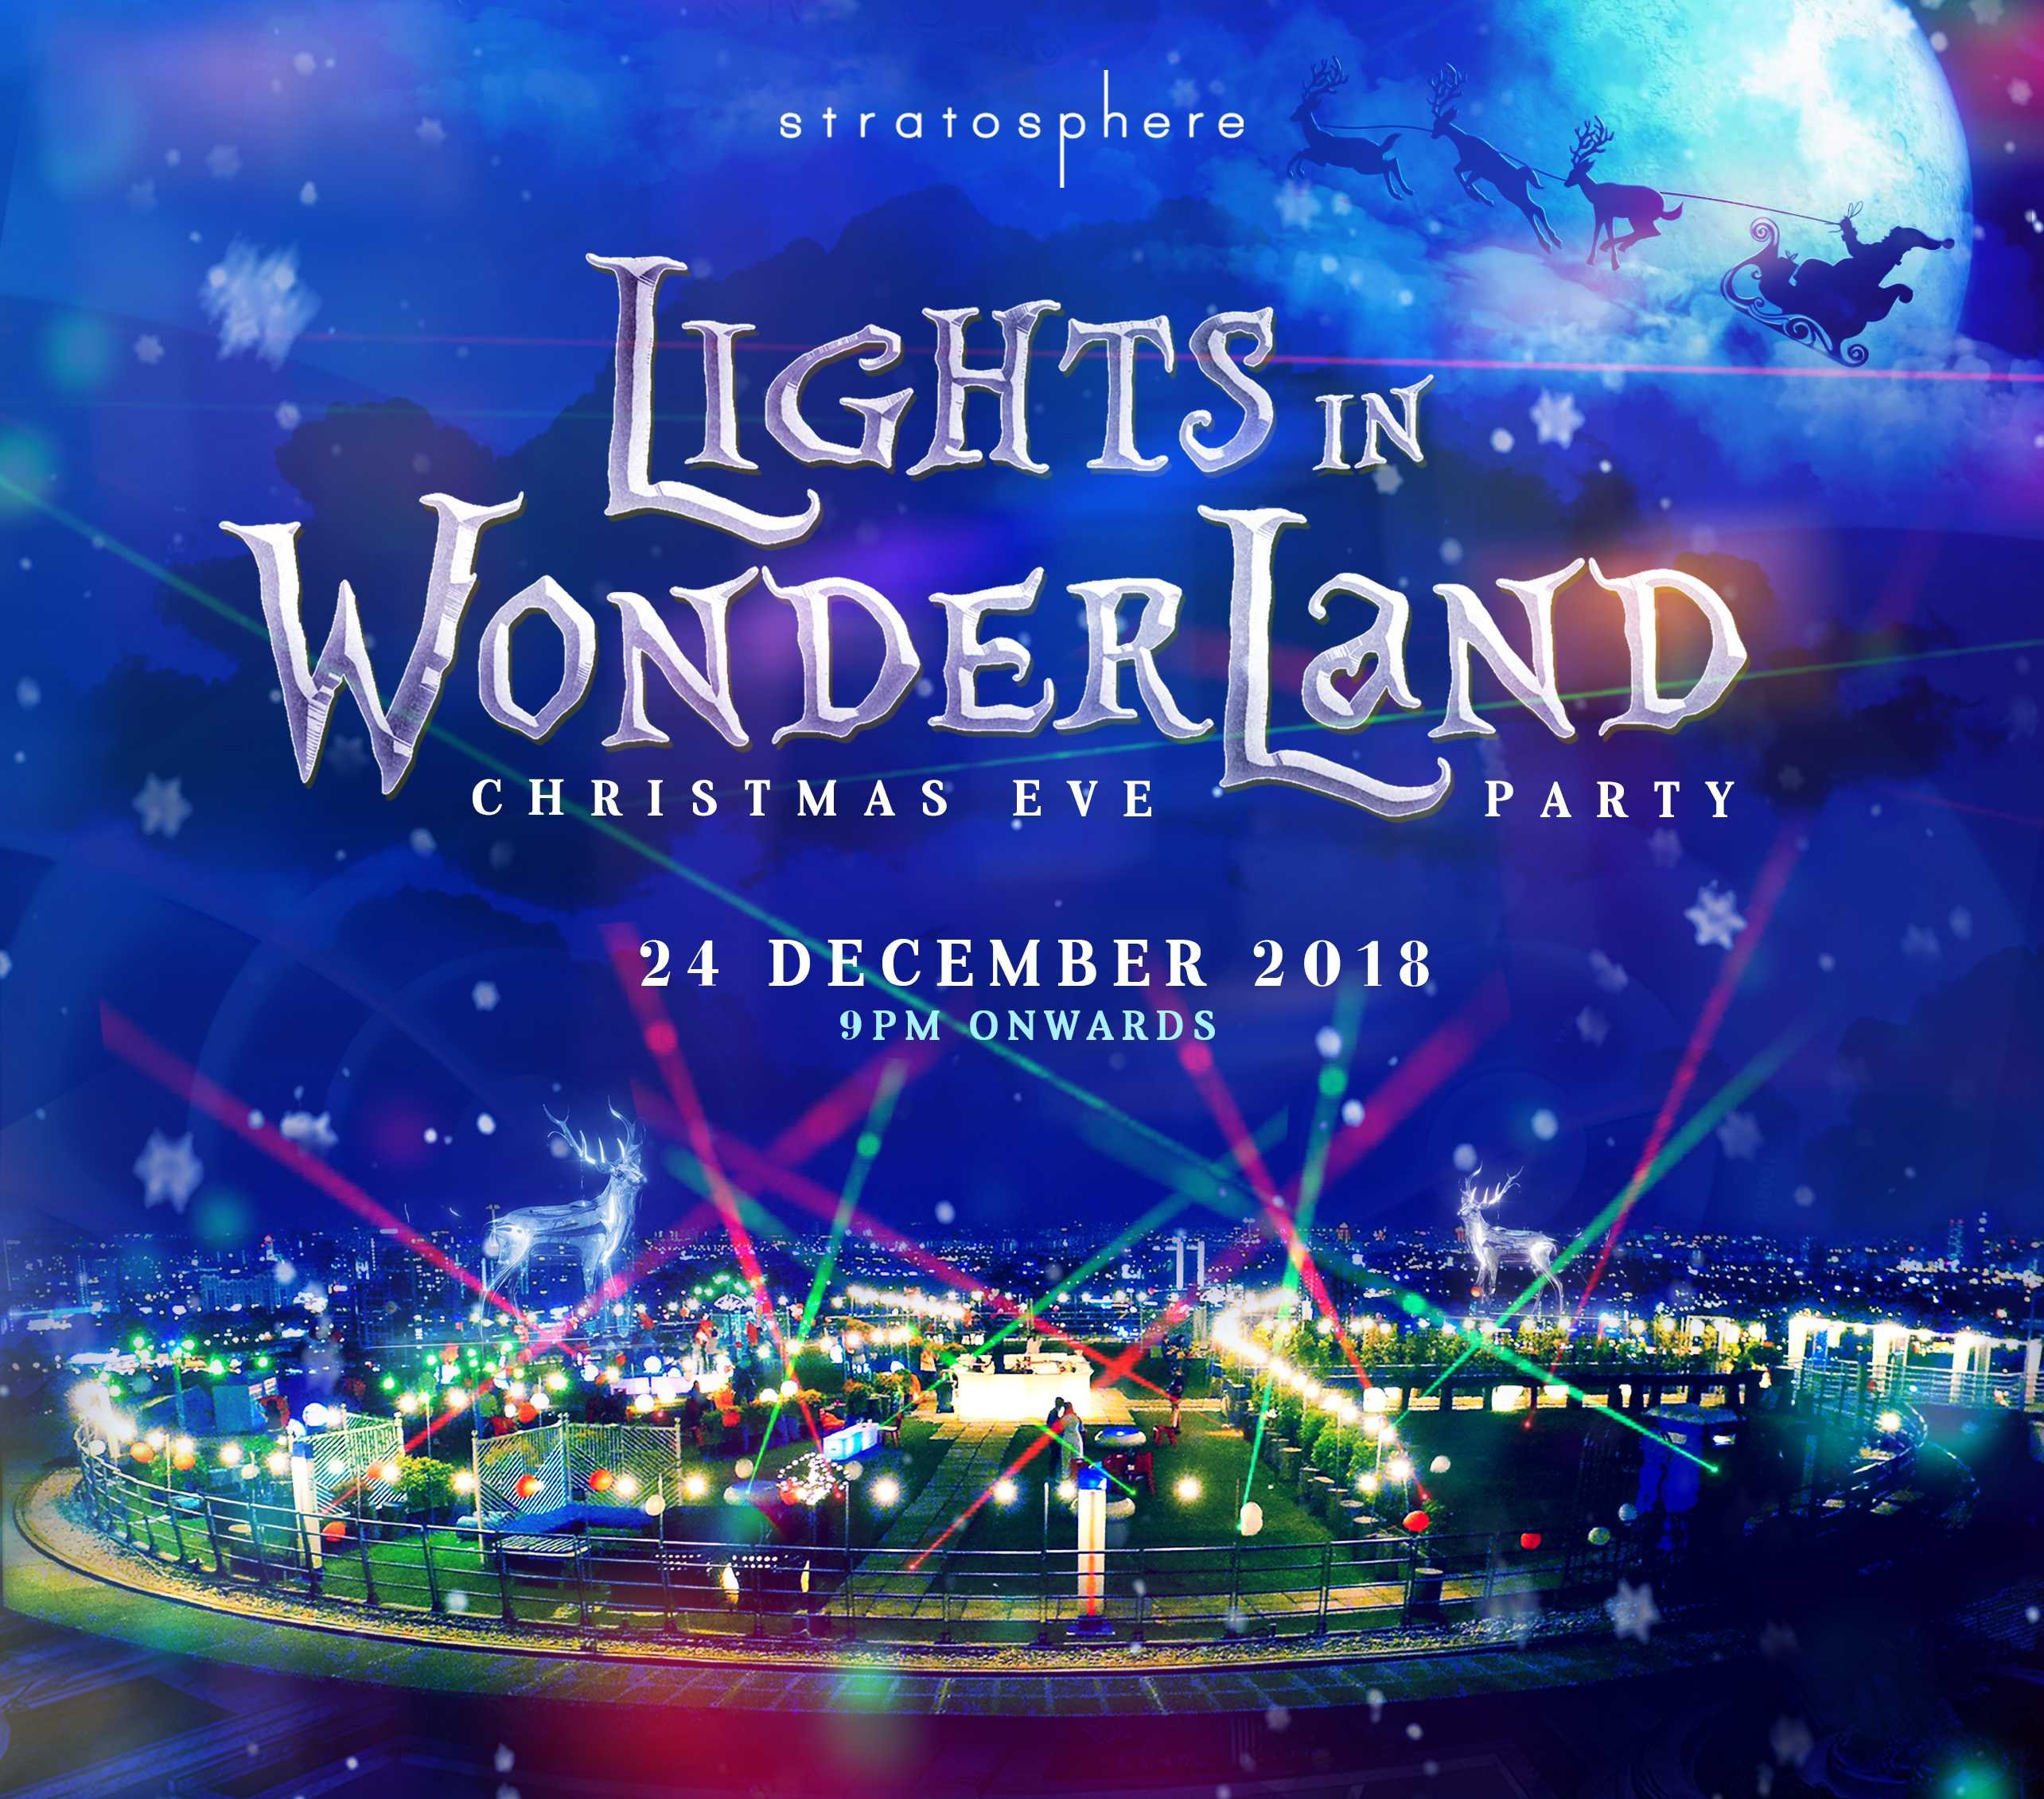 Stratosphere at The Roof-Light in Wonderland (Christmas Eve Party)